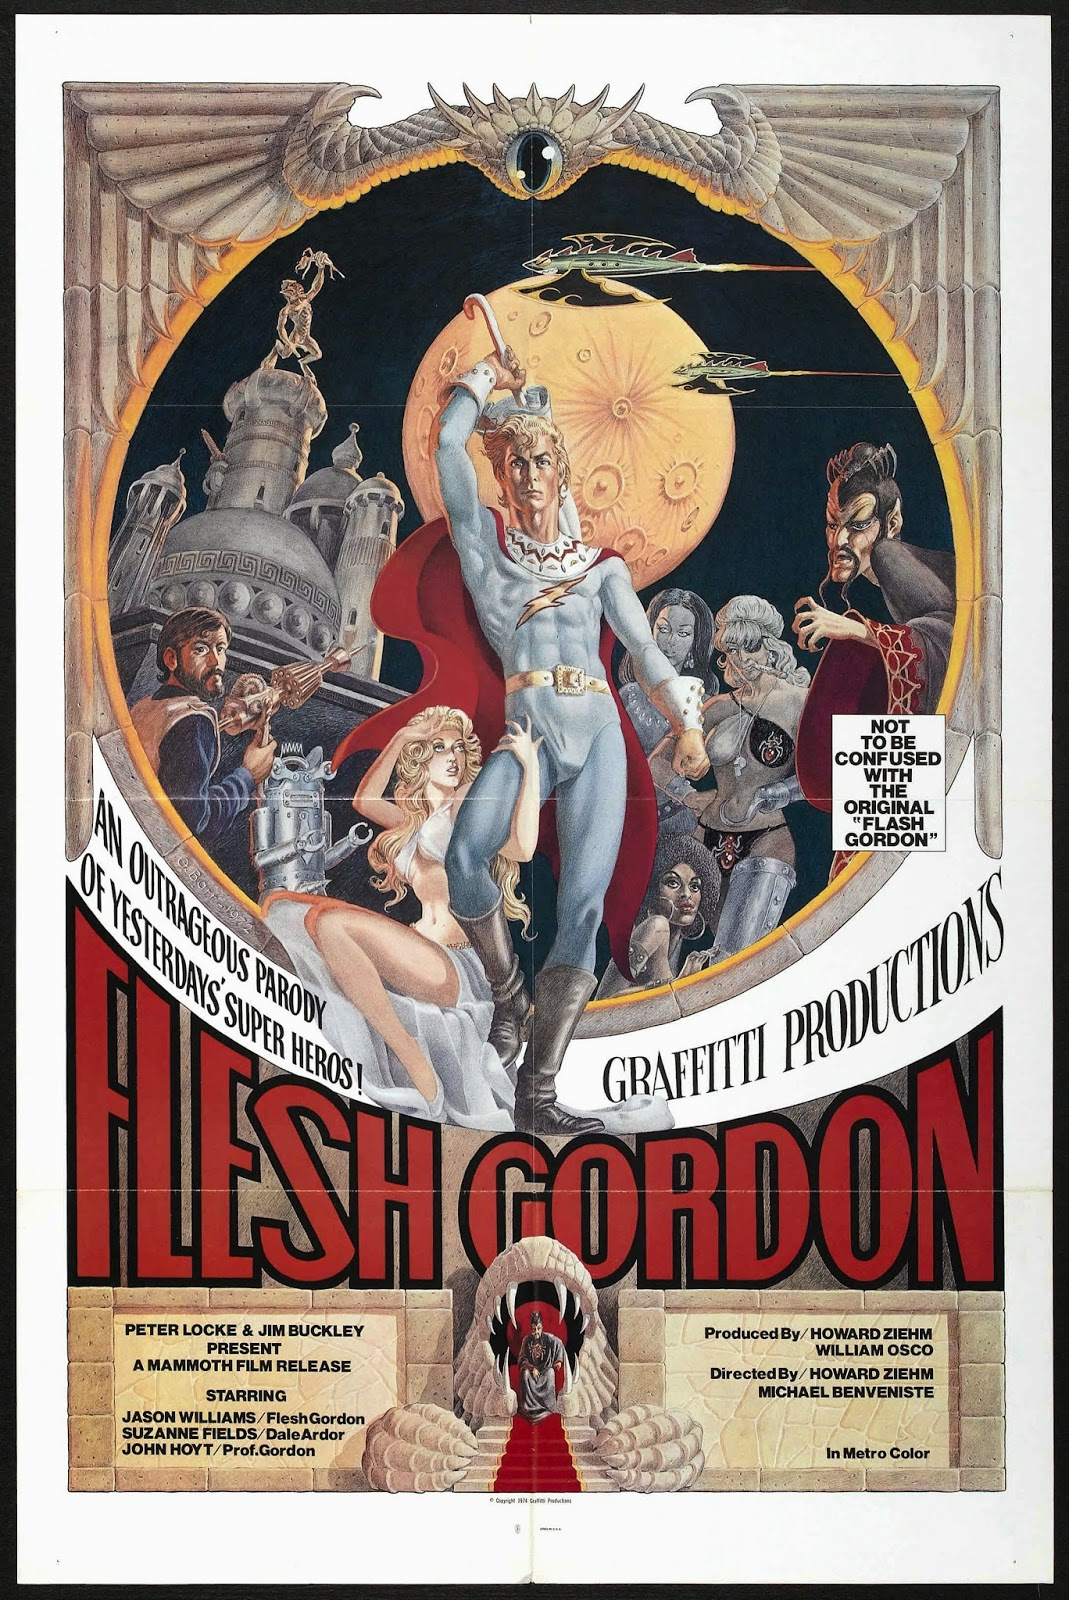 Flash Gordon - Sternenreise generated by